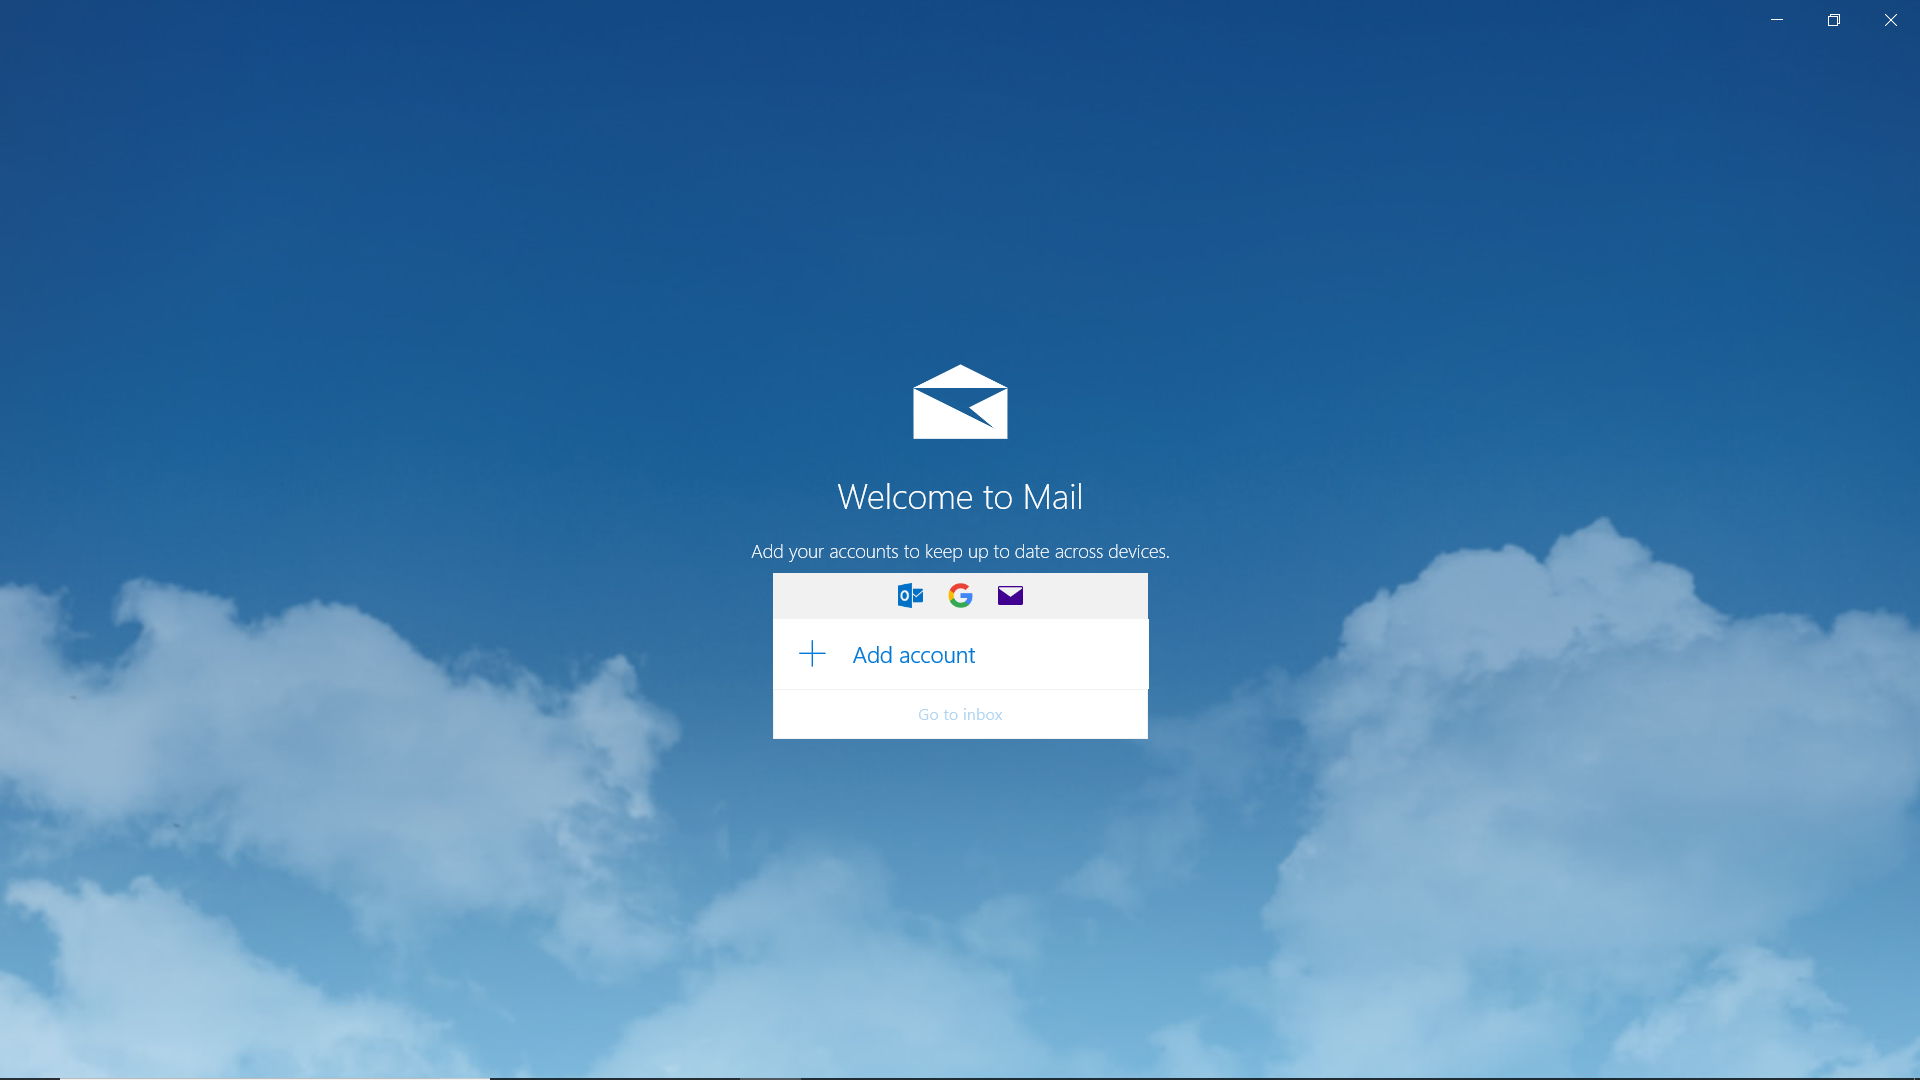 Microsoft makes a U-turn, turns off ads in Windows 10 Mail app